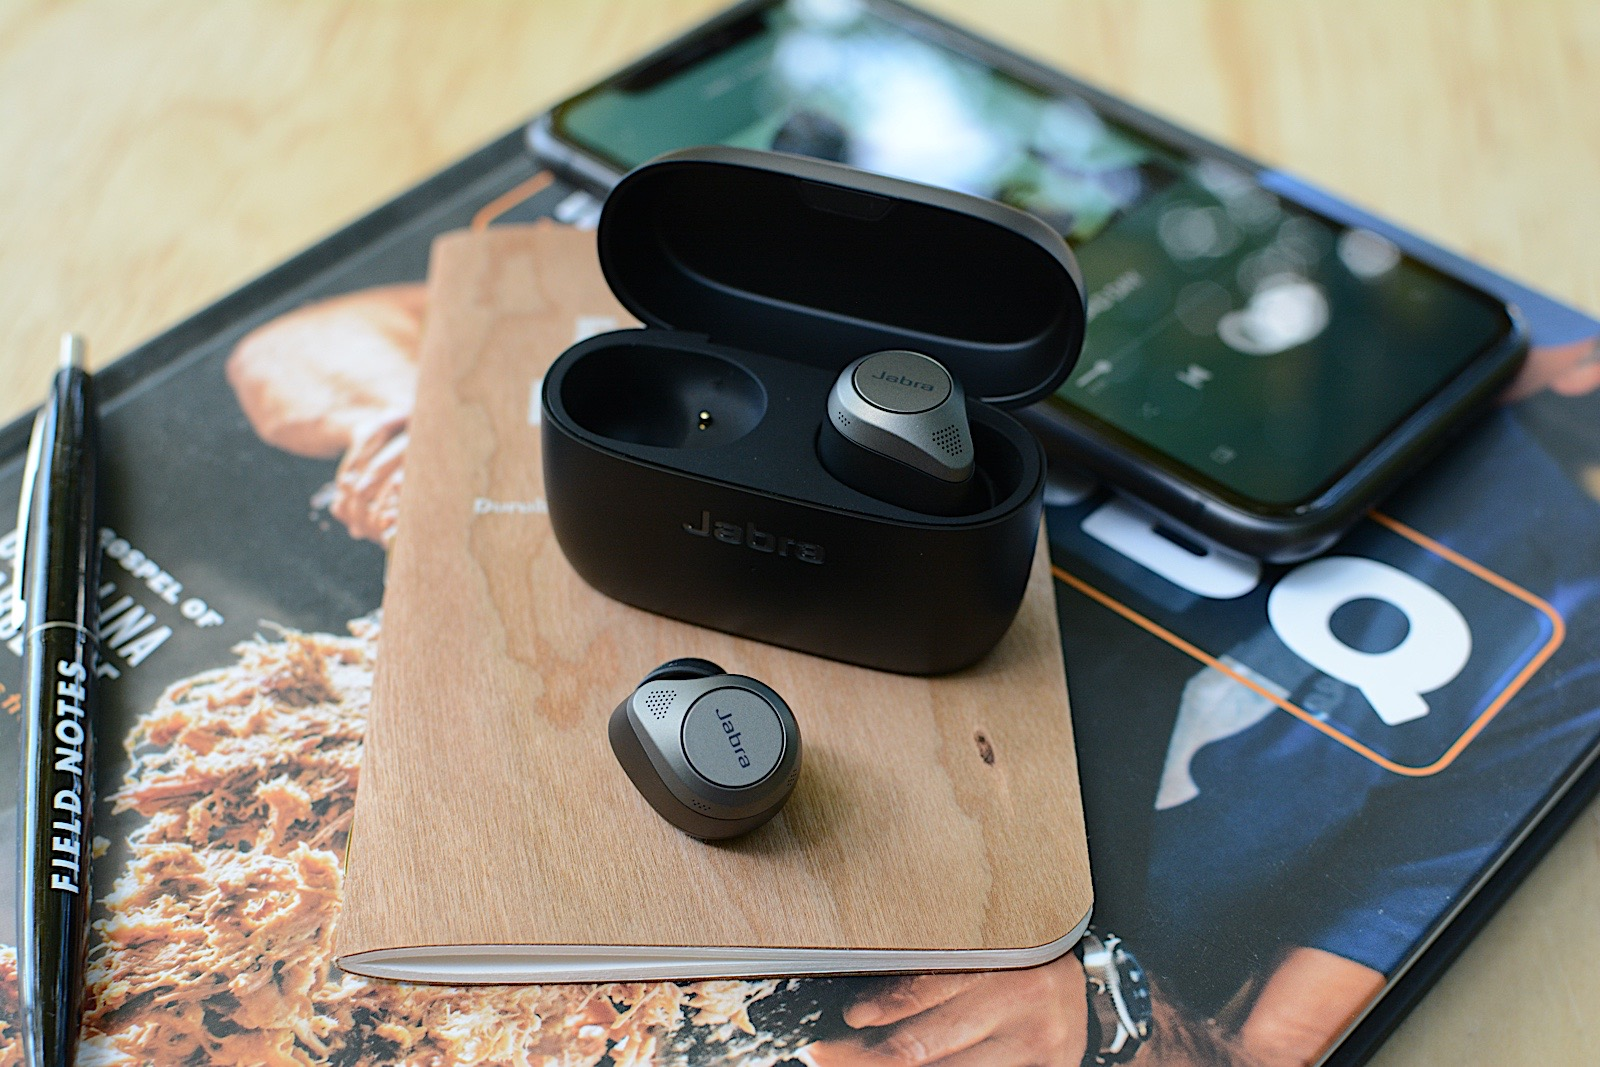 Jabra's Elite 85t wireless earbuds are $50 off right now